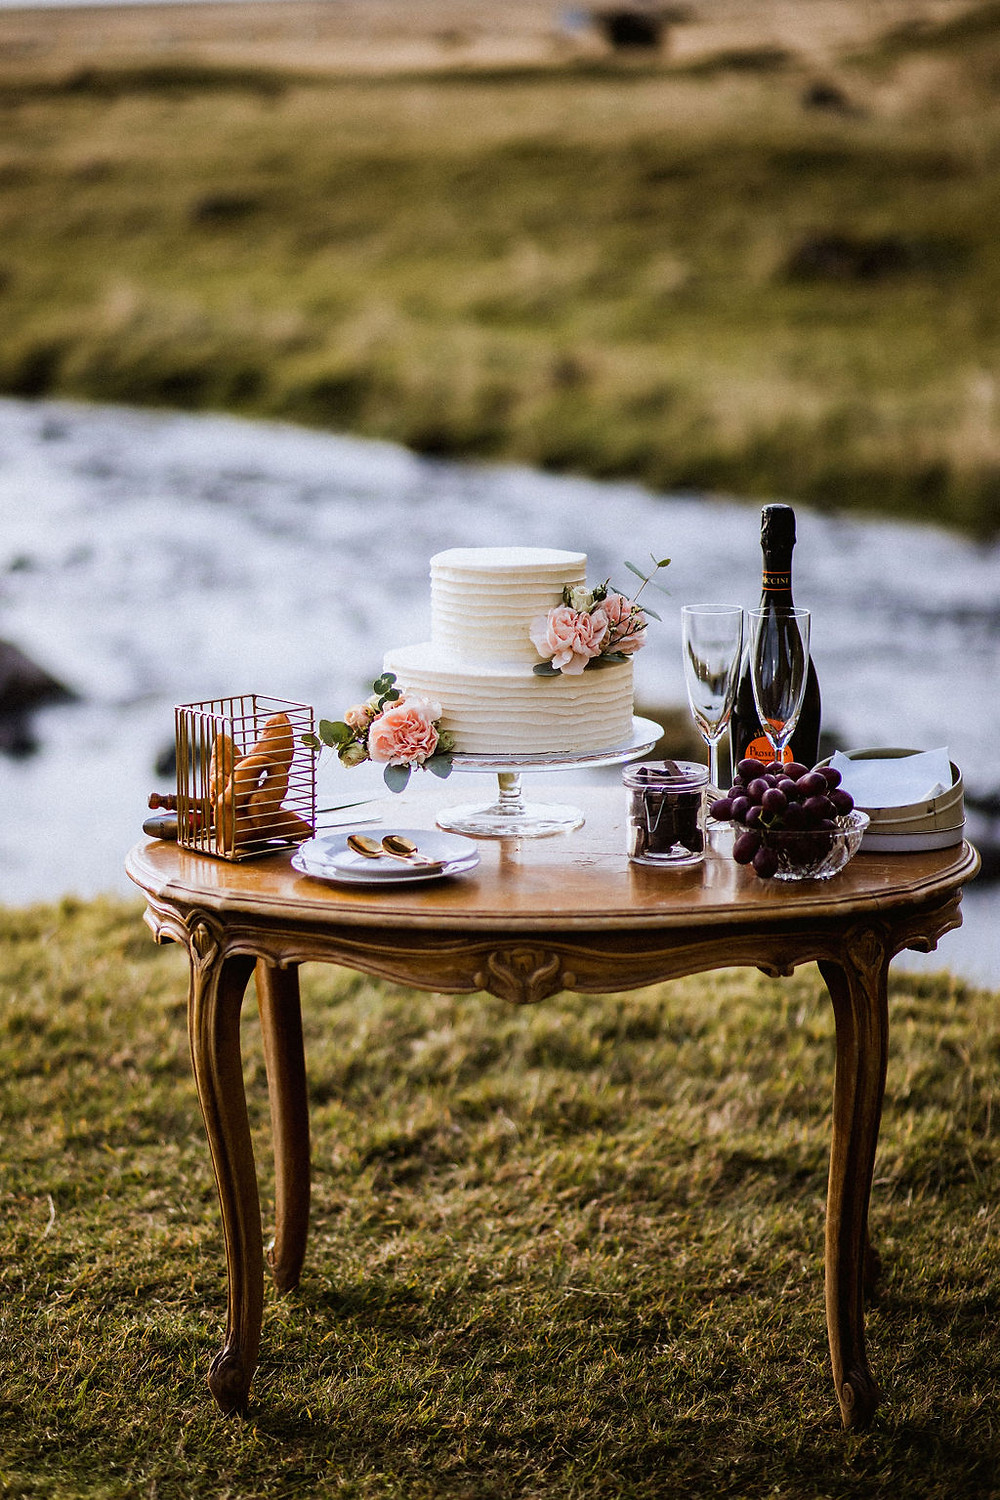 Icelandic wedding picnic for Lesbian elopement in Iceland planned by Pink Iceland wedding planner